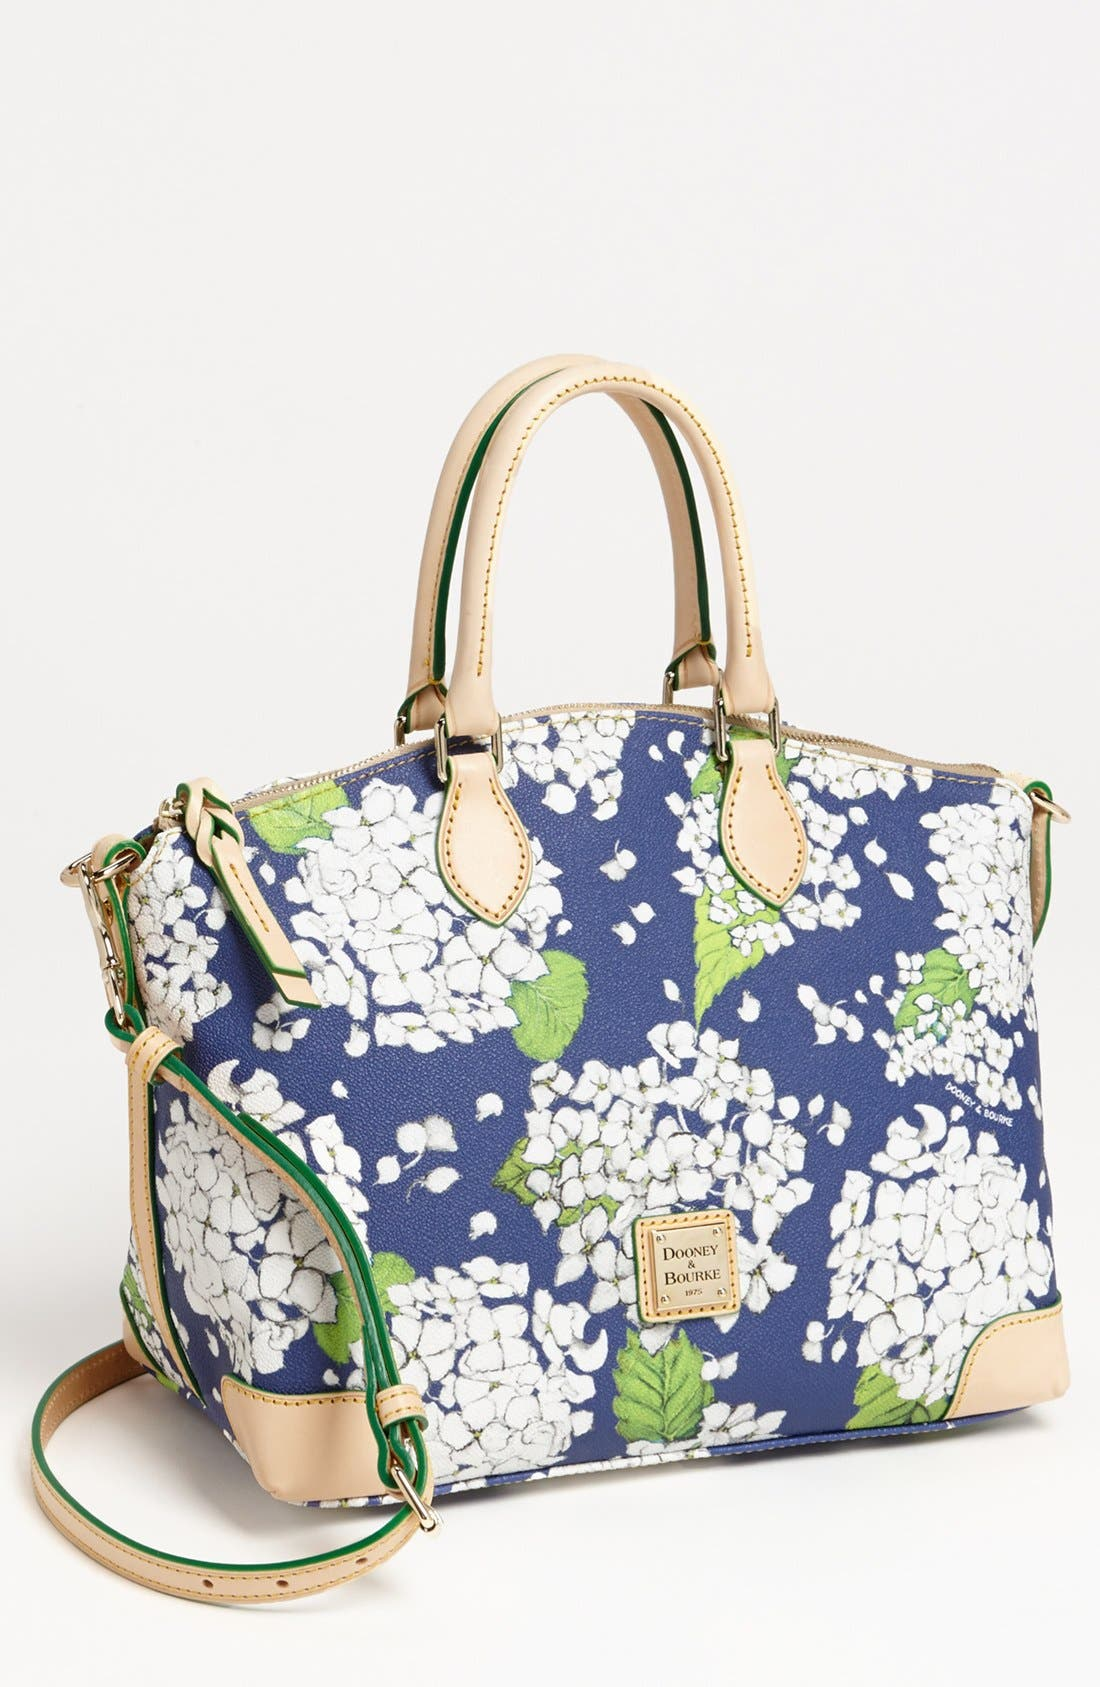 Alternate Image 1 Selected - Dooney & Bourke 'Hydrangea' Satchel